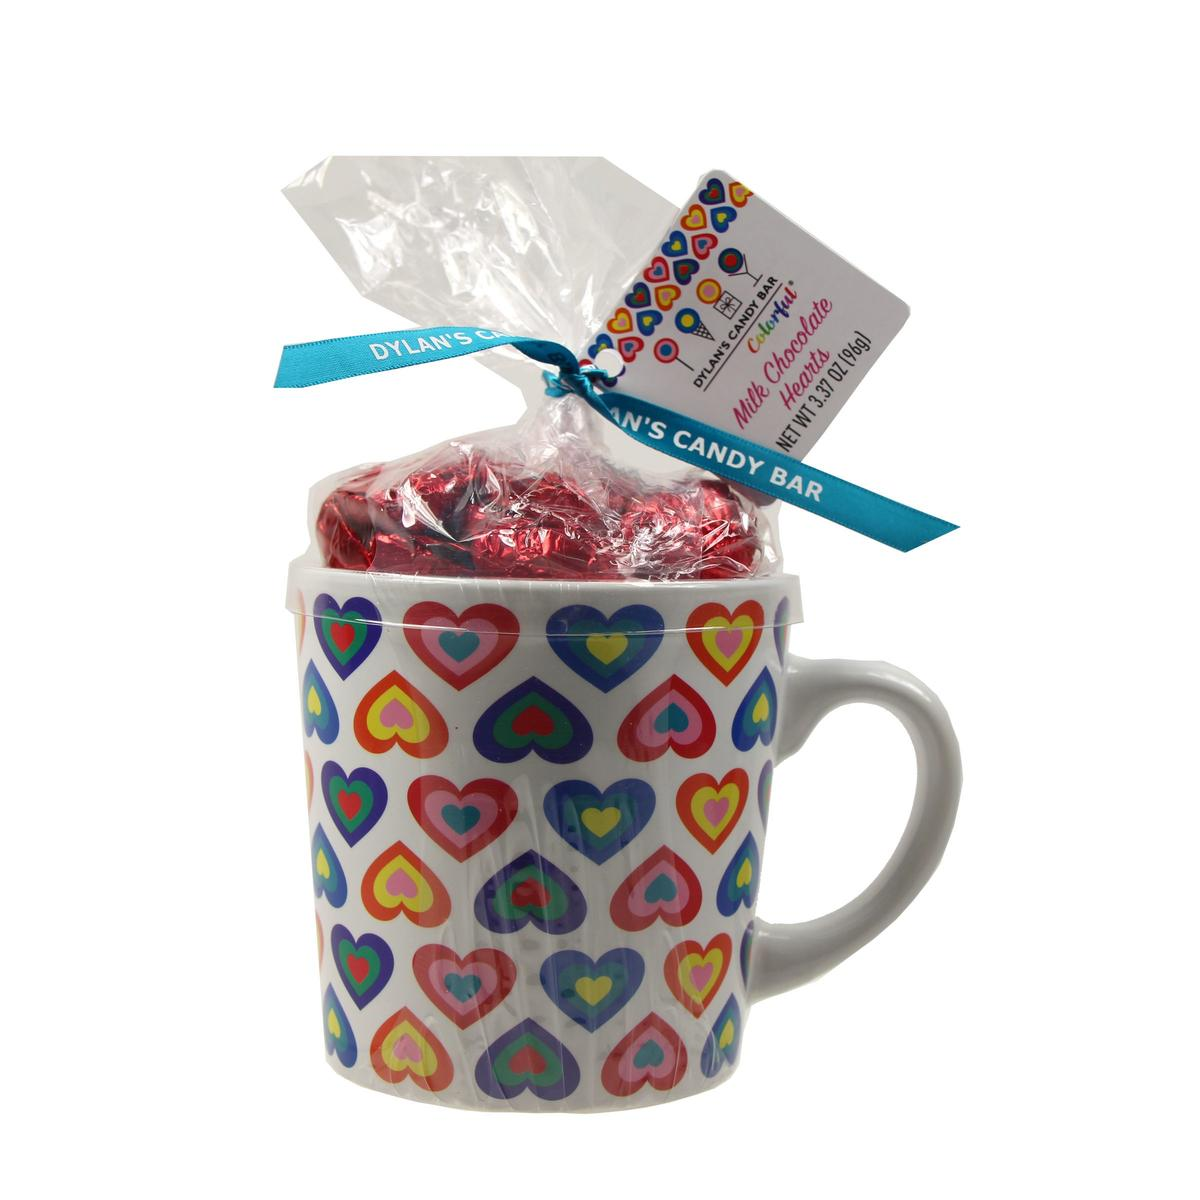 Dylan's Candy Bar Mug